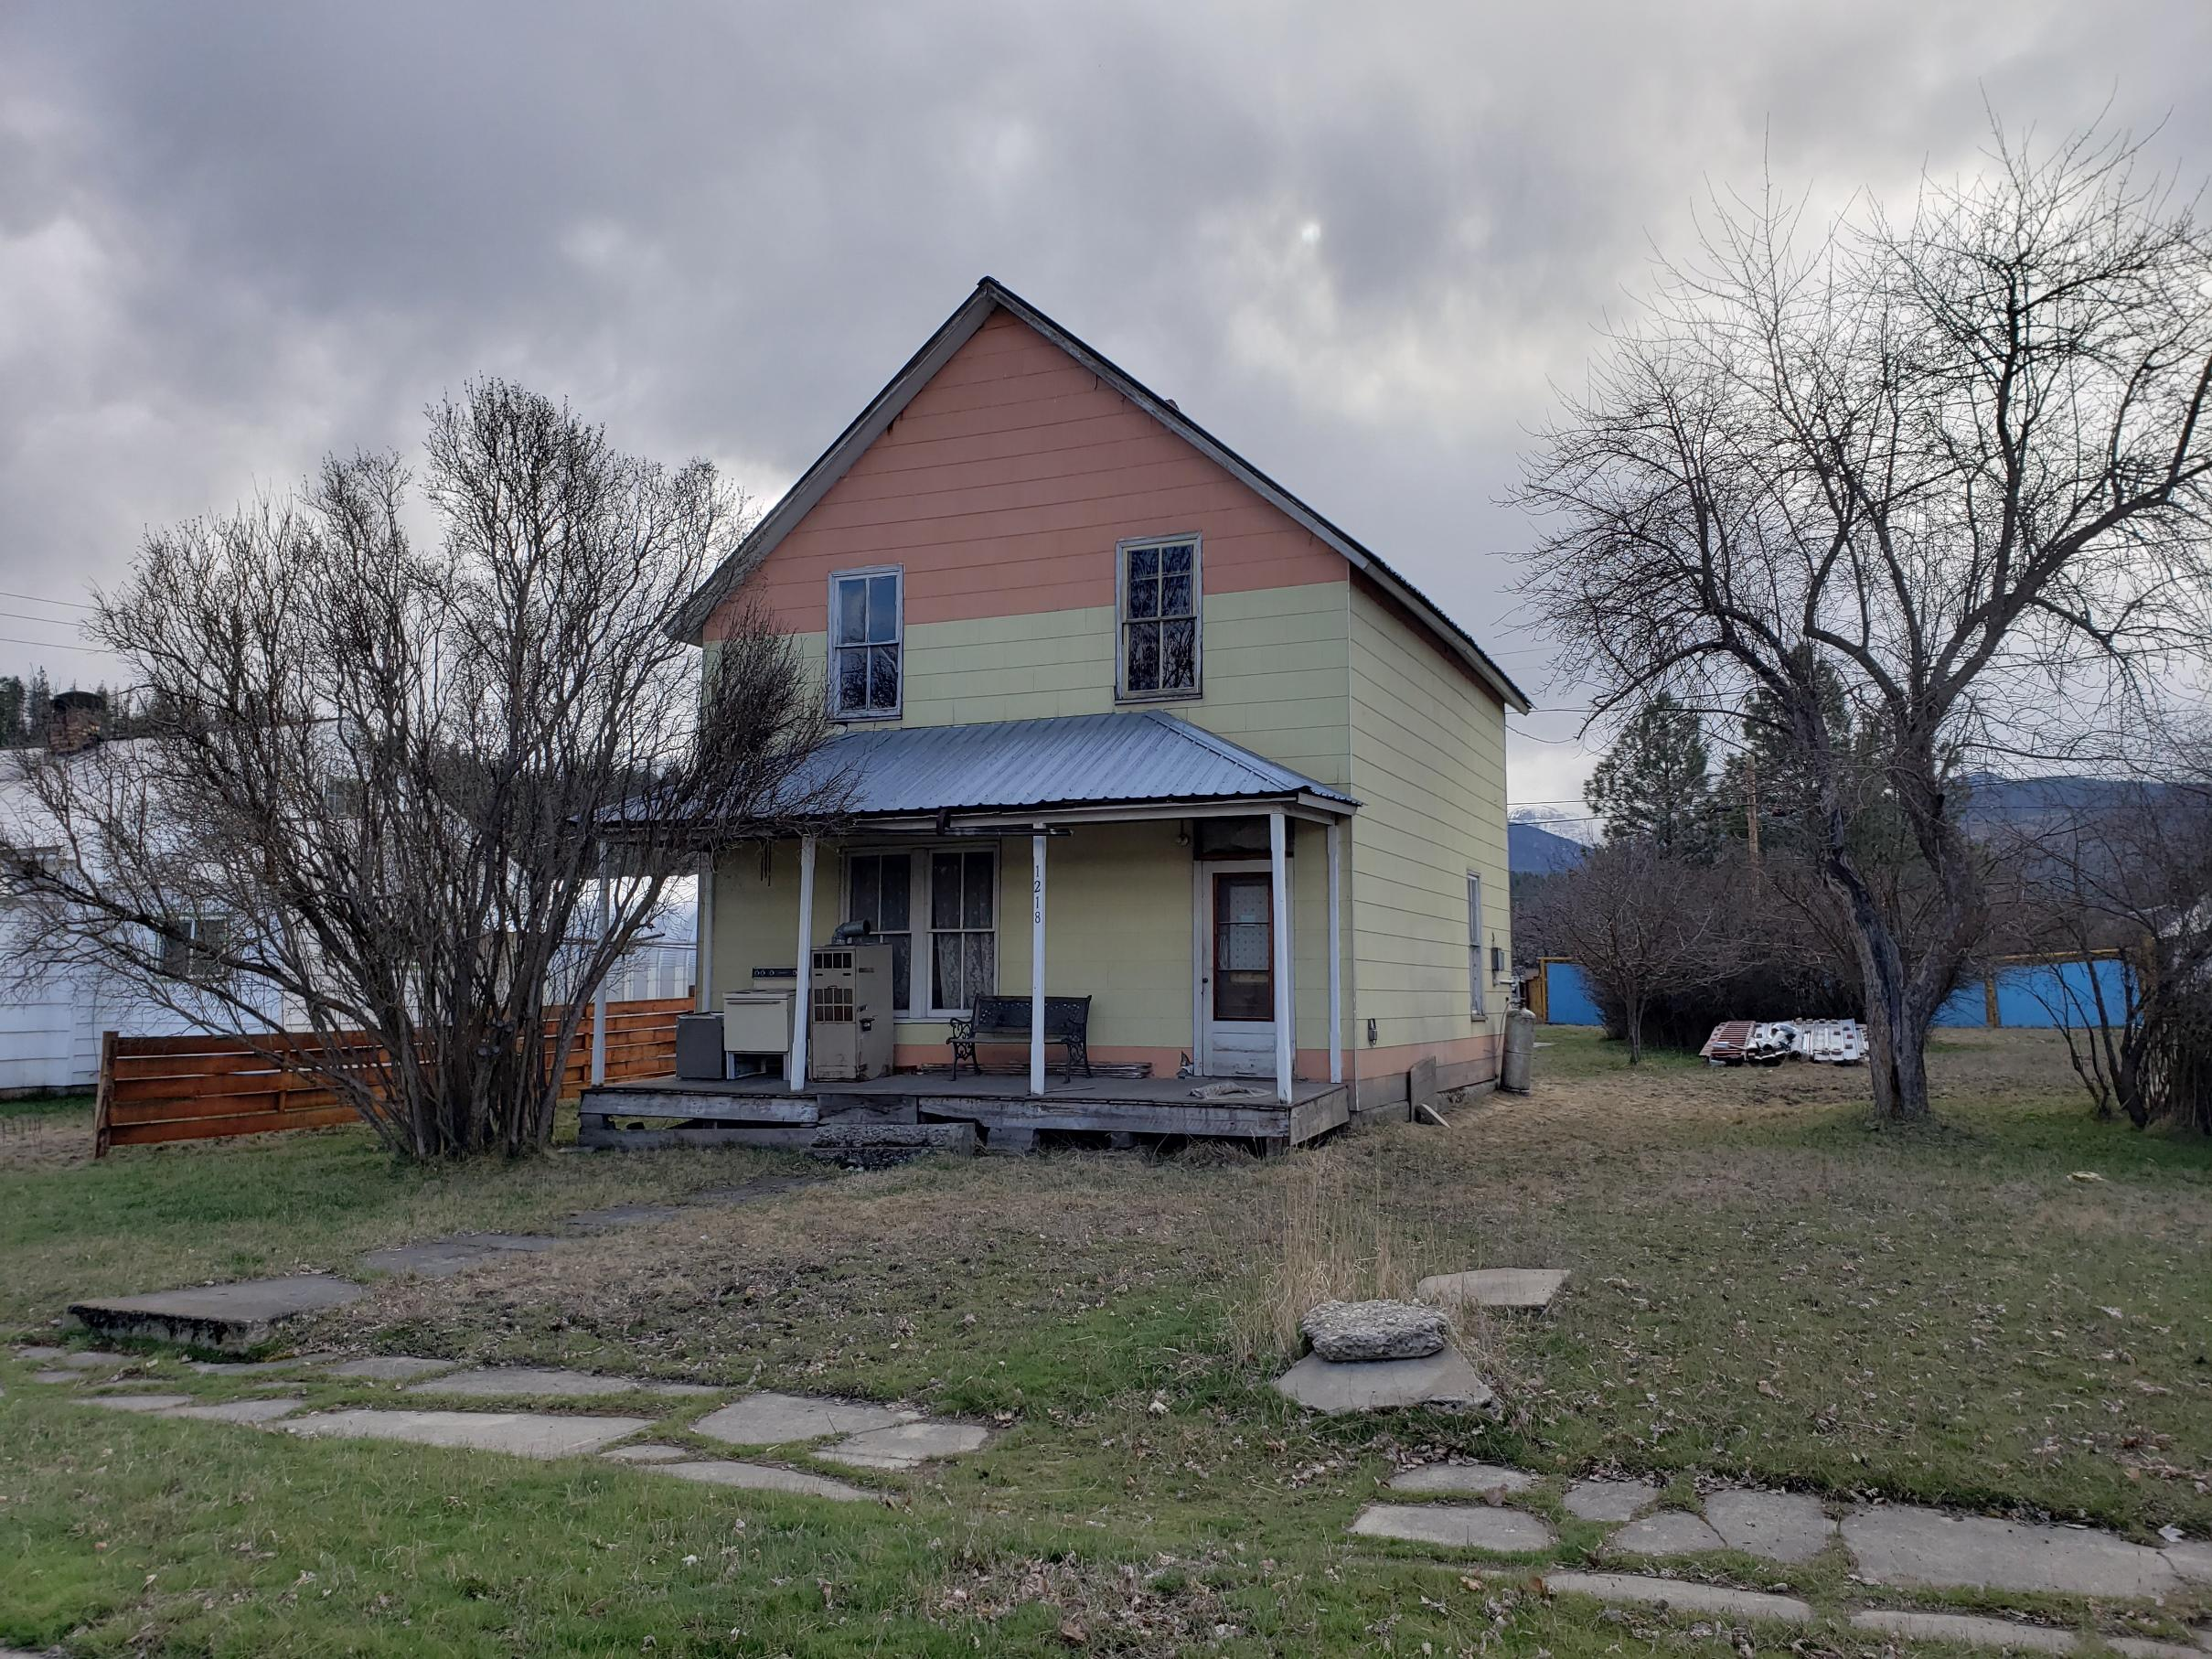 Opportunities abound with this fixer upper located on 2 city lots.  New sewer and water lines have been brought to this home along with a new panel box for electricity.  Put your carpenter skills to work as you breath new life into this 1910 farmhouse.  This home comes with 2 city lots, so you  can enjoy a remodel and also split the lots and build a new home  as well.   Whether you remodel or decide to build brand new, this property definitely provides possibilites.  Call for an appointment to see this great opportunity today!